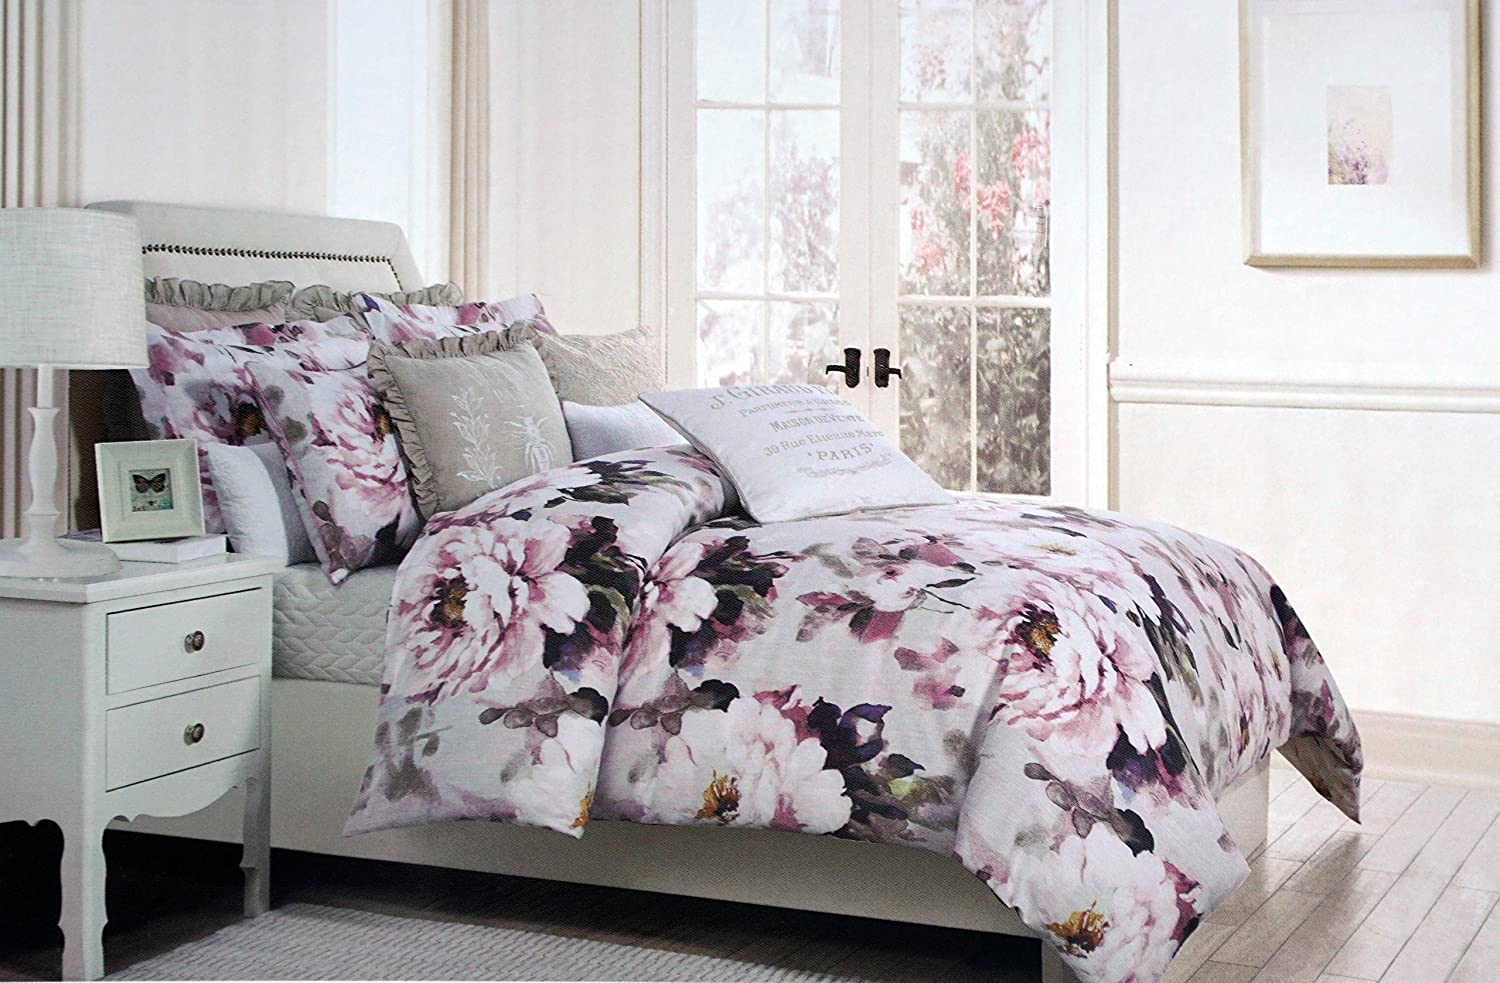 KING SIZE BED ENGLISH ROSE LILAC DUVET COVER FLORAL BORDER GREEN PURPLE WHITE